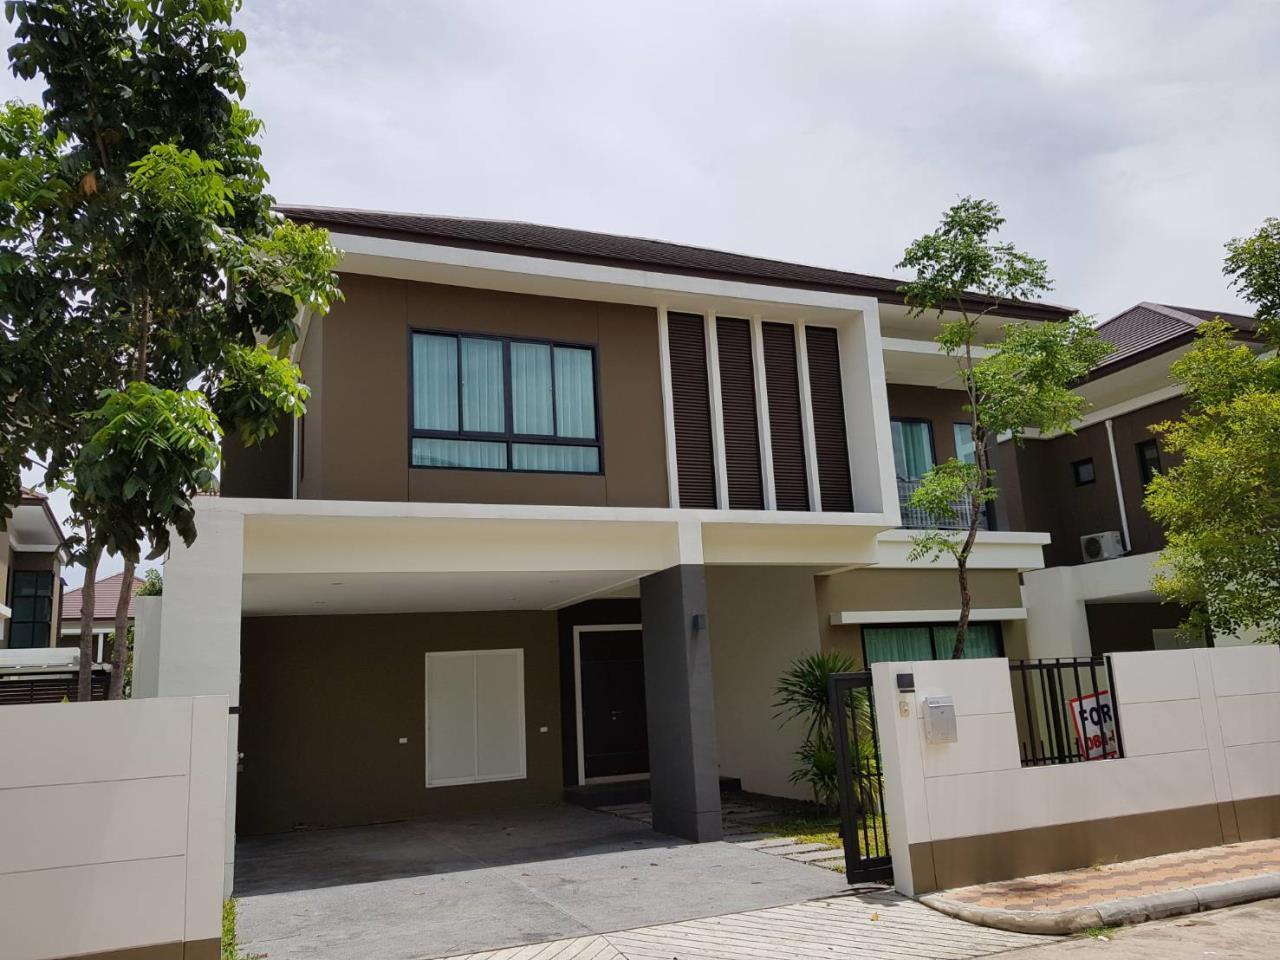 Right Move Thailand Agency's HR820 Villa Arcadia 2 house in compound for rent 70,000THB - for sale 11,900,000THB - 4 bedrooms - 230sqm. 1